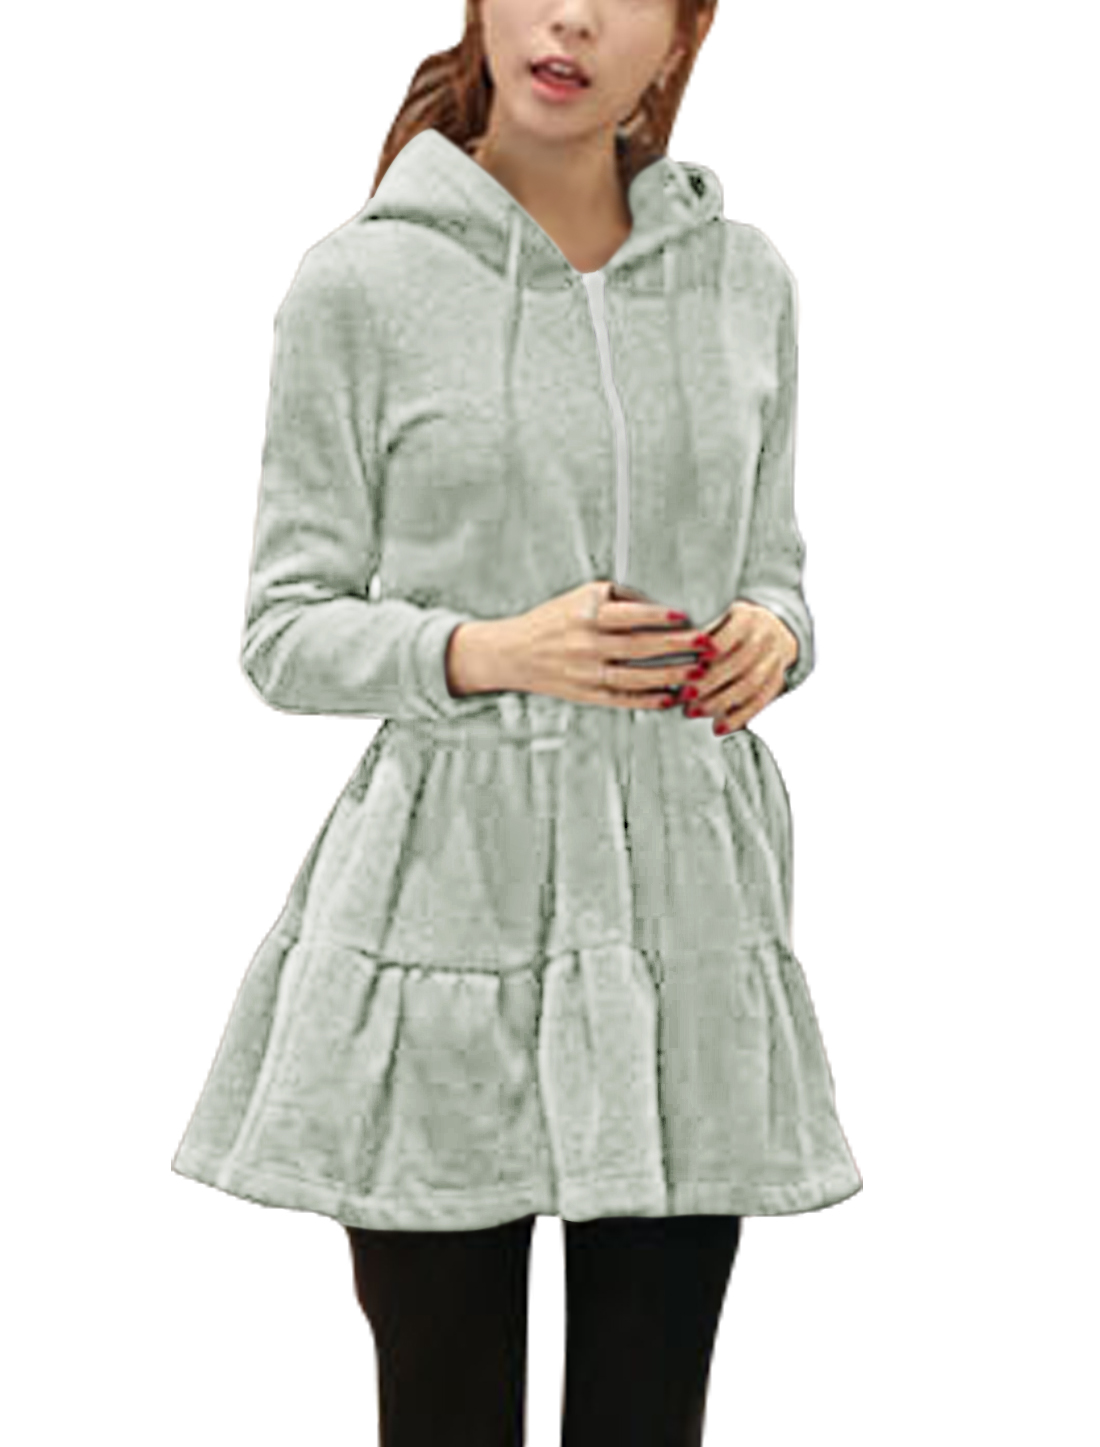 Women Rabbit Ear Hood Zip Up Flouncing Hem Casual Dress Light Gray S